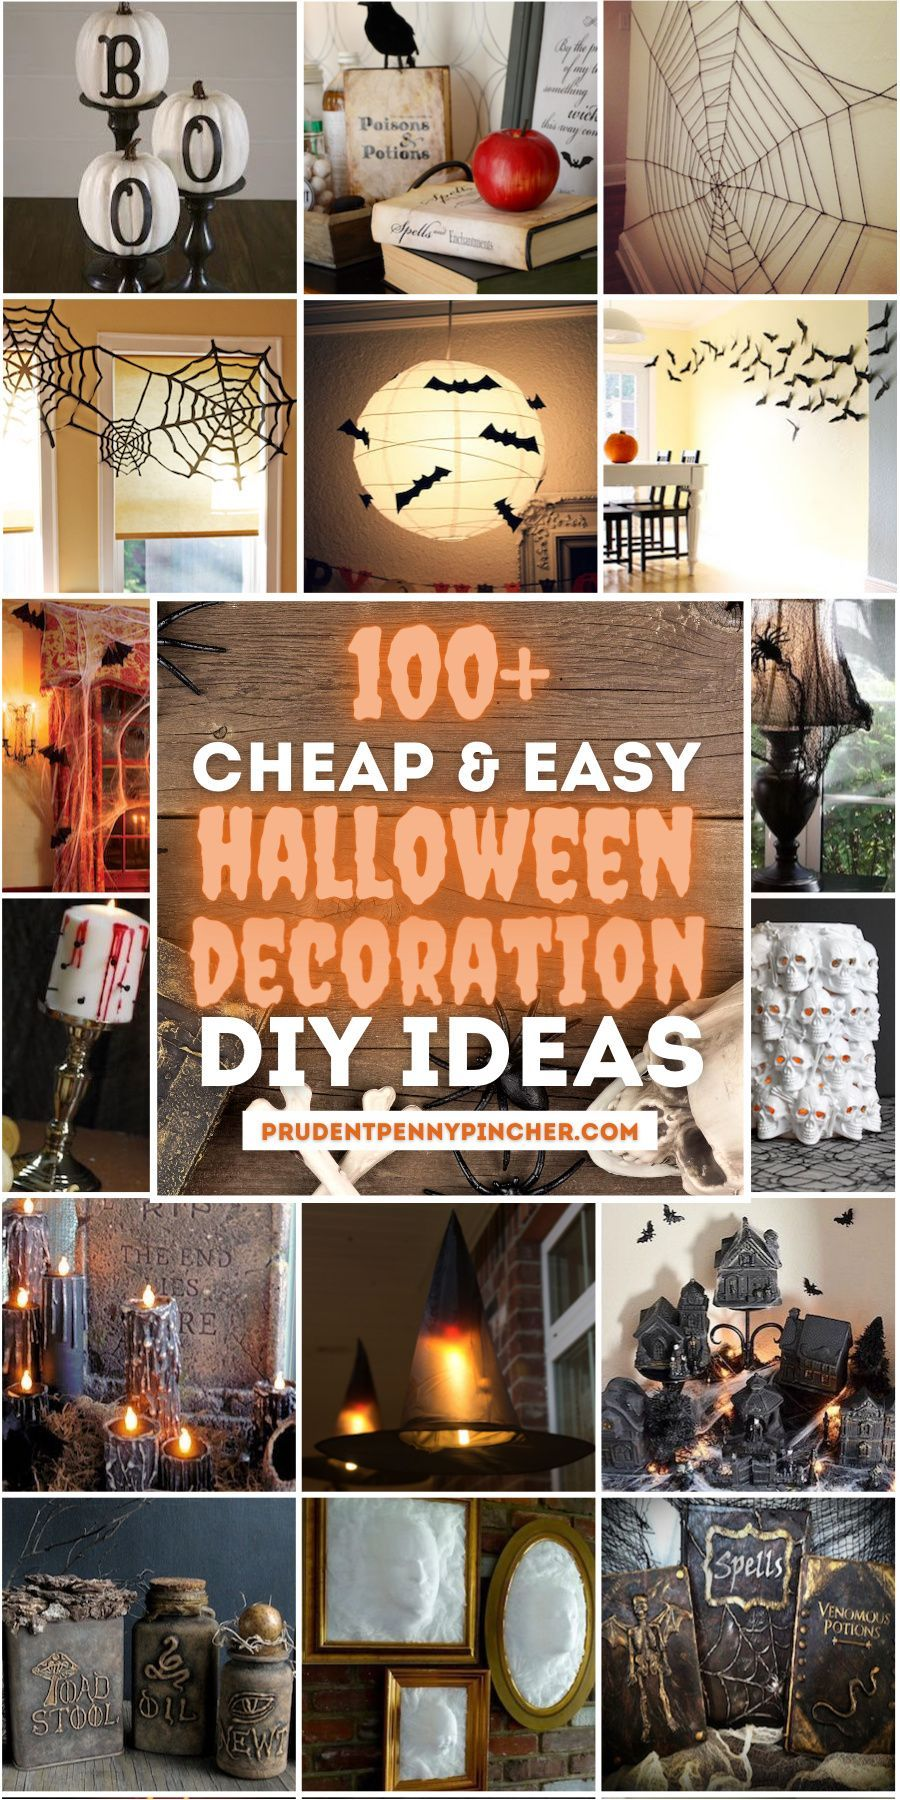 100 Cheap And Easy Diy Halloween Decor Ideas In 2020 Easy Diy Halloween Decorations Halloween Party Diy Halloween Decorations